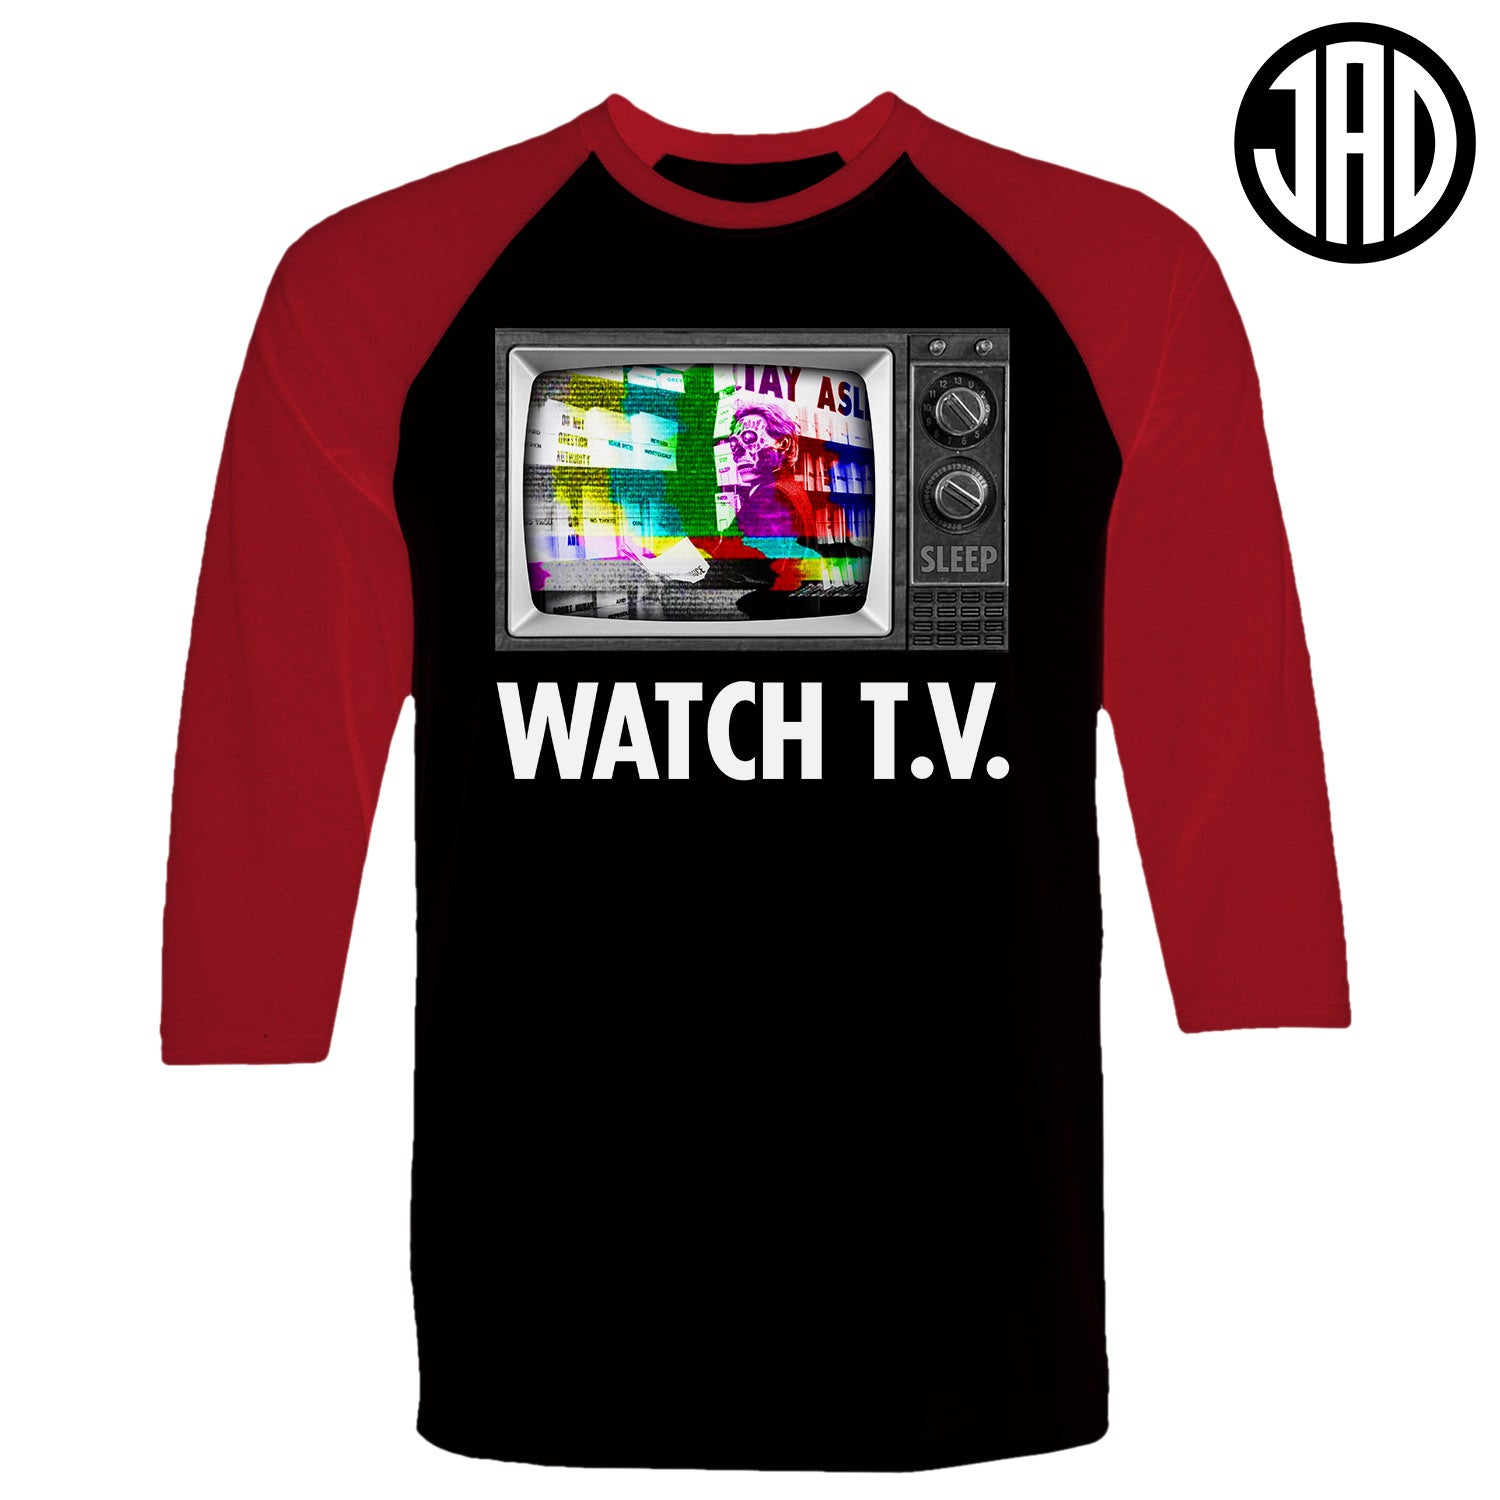 Watch TV - Men's Baseball Tee